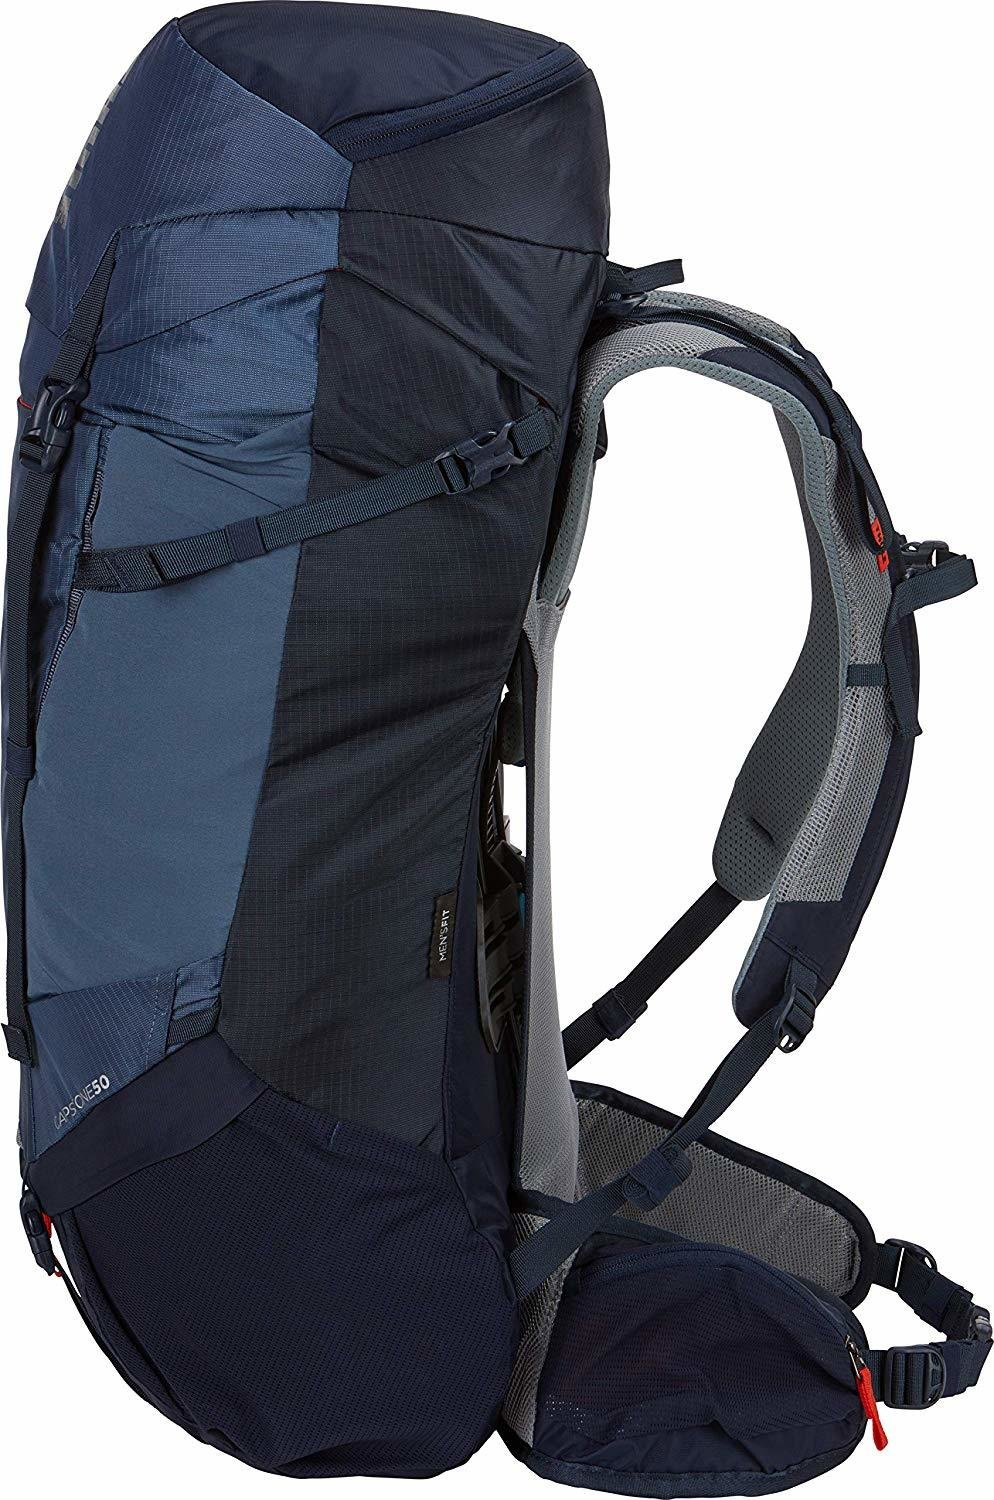 Thule Capstone 40L Premium Backpack - Adjustable Fit